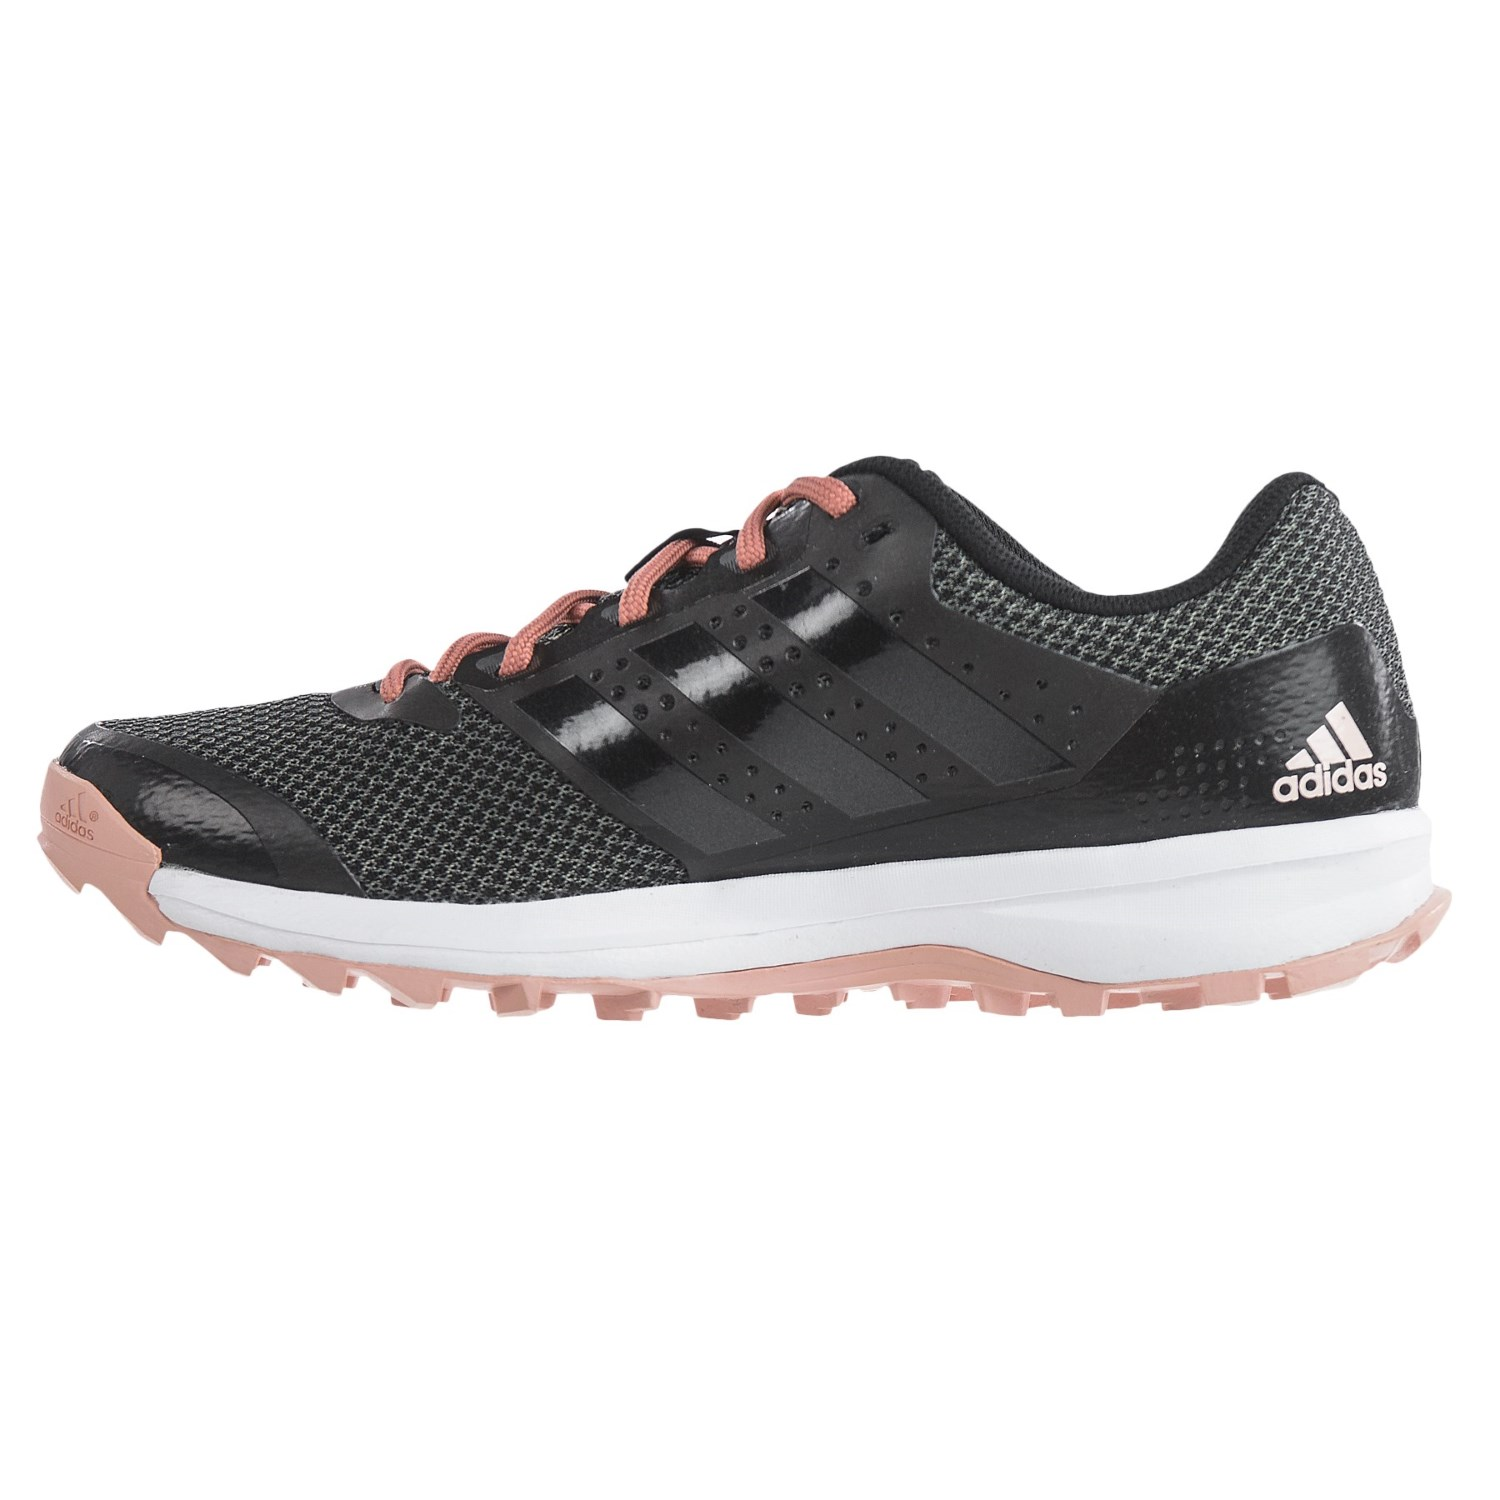 2174baa9bb766 What Are Adidas Shoes Made Of Field Hockey Shoes Men